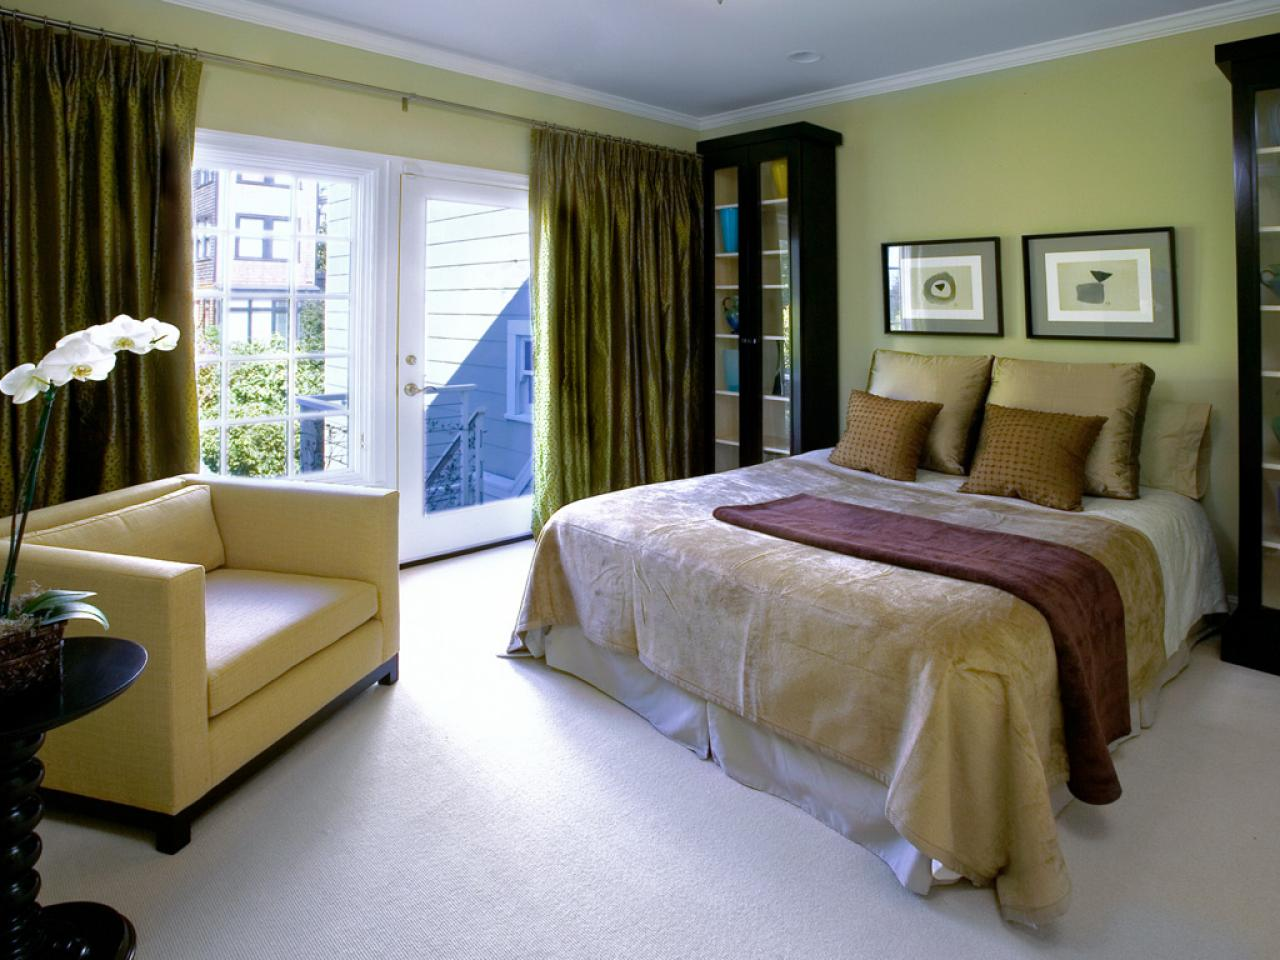 bedroom color schemes: pictures, options & ideas | hgtv